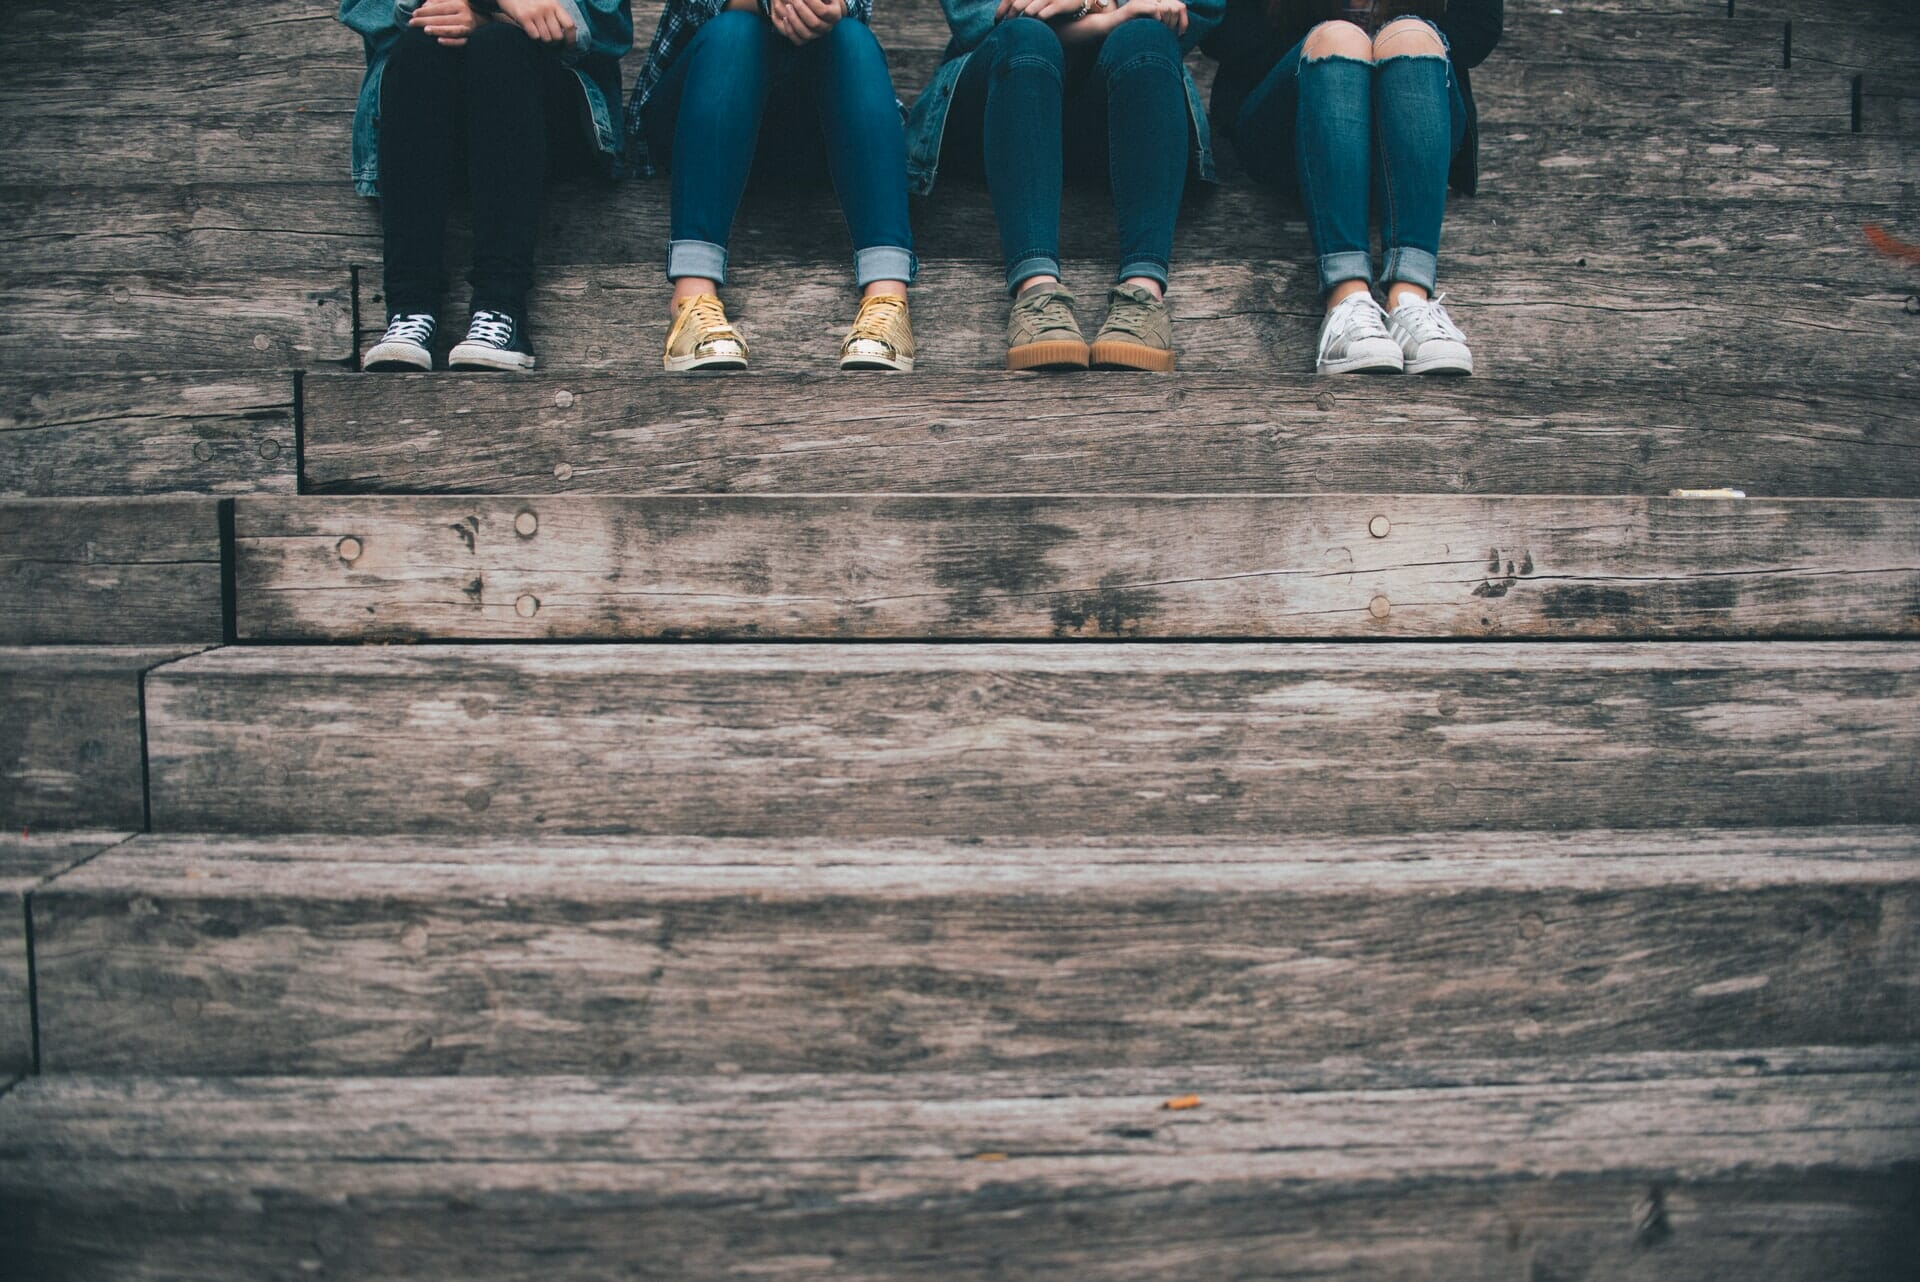 Group of 4 people sitting on stairs.